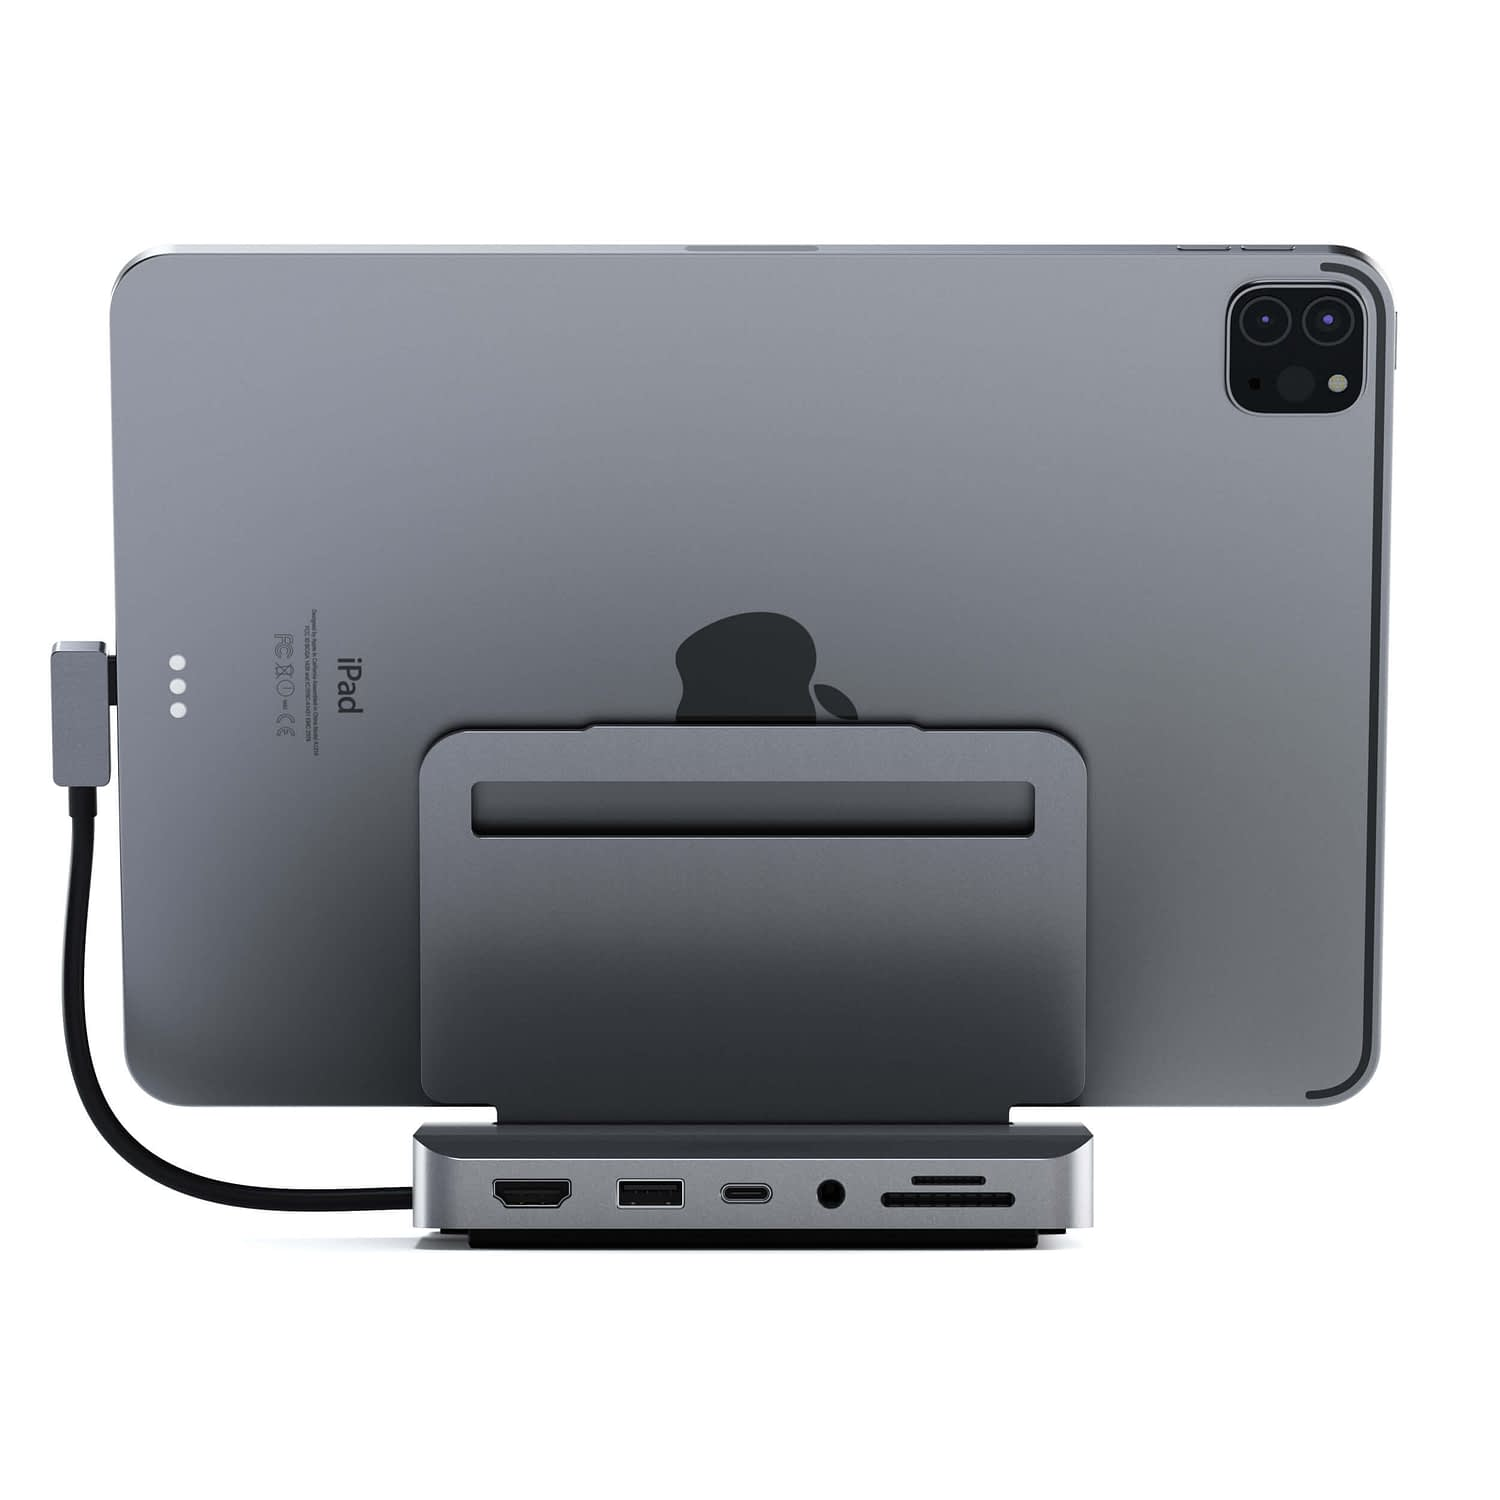 Satechi Aluminum Stand Hub for iPad Pro space gray_06